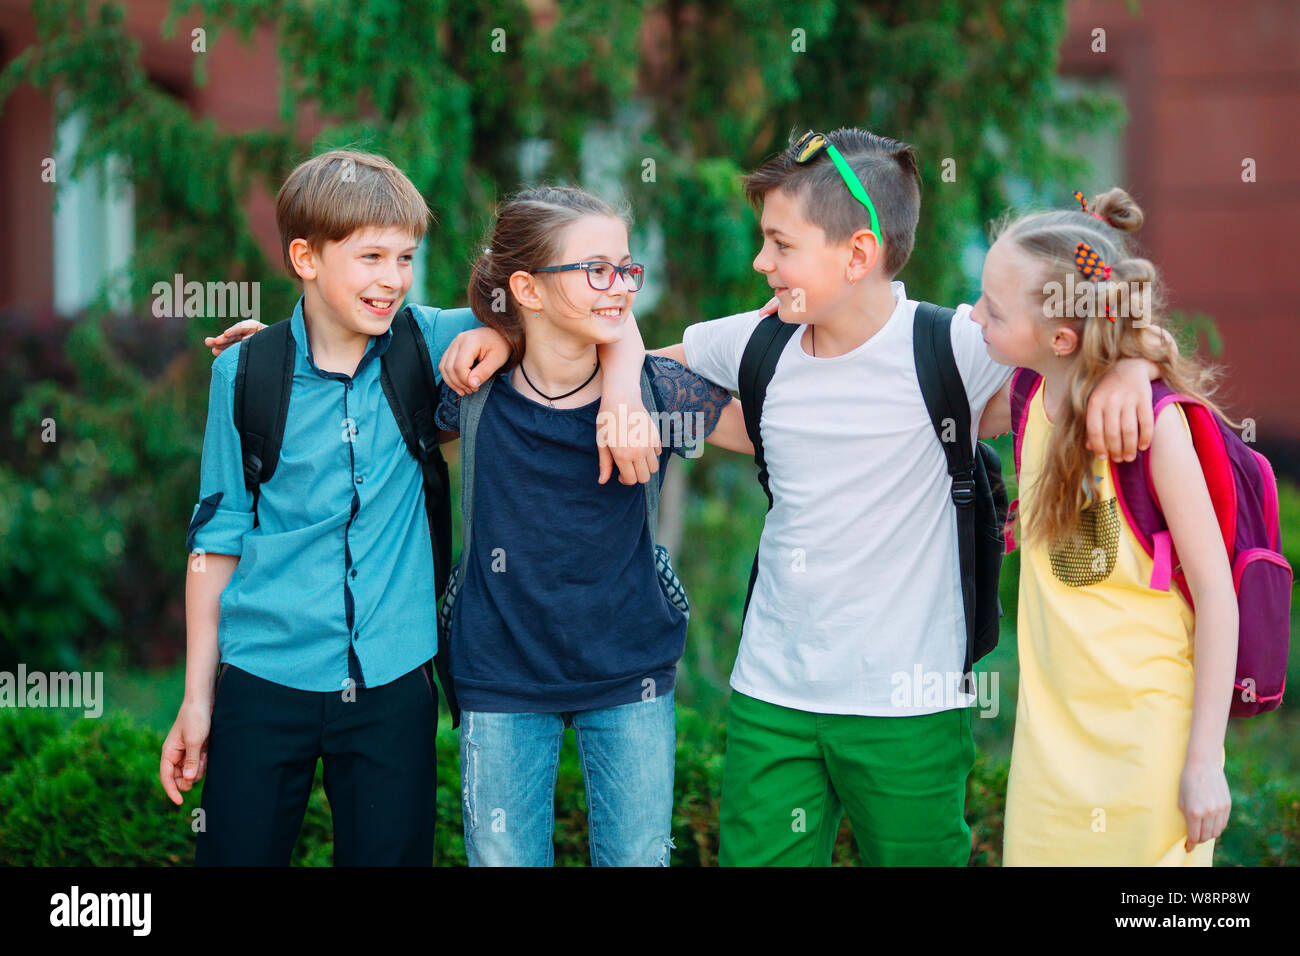 Children S Friendship Four Little School Students Two Boys And